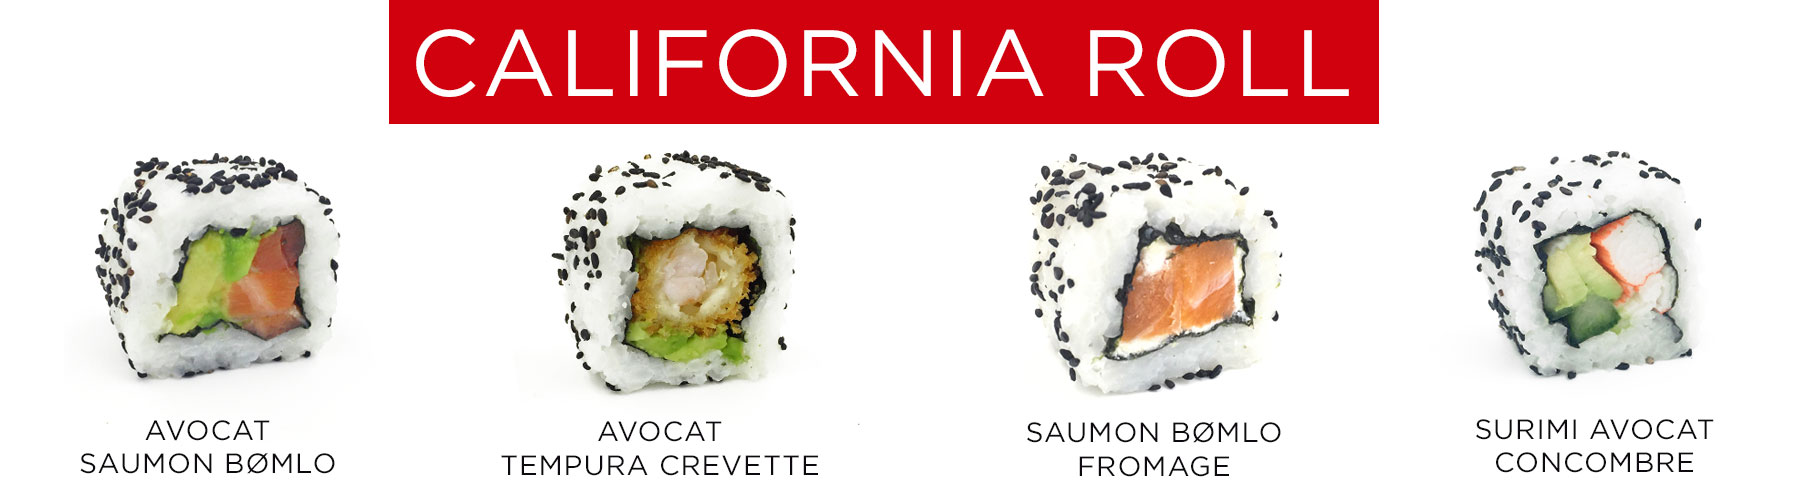 momento-sushi-06-california-roll-2